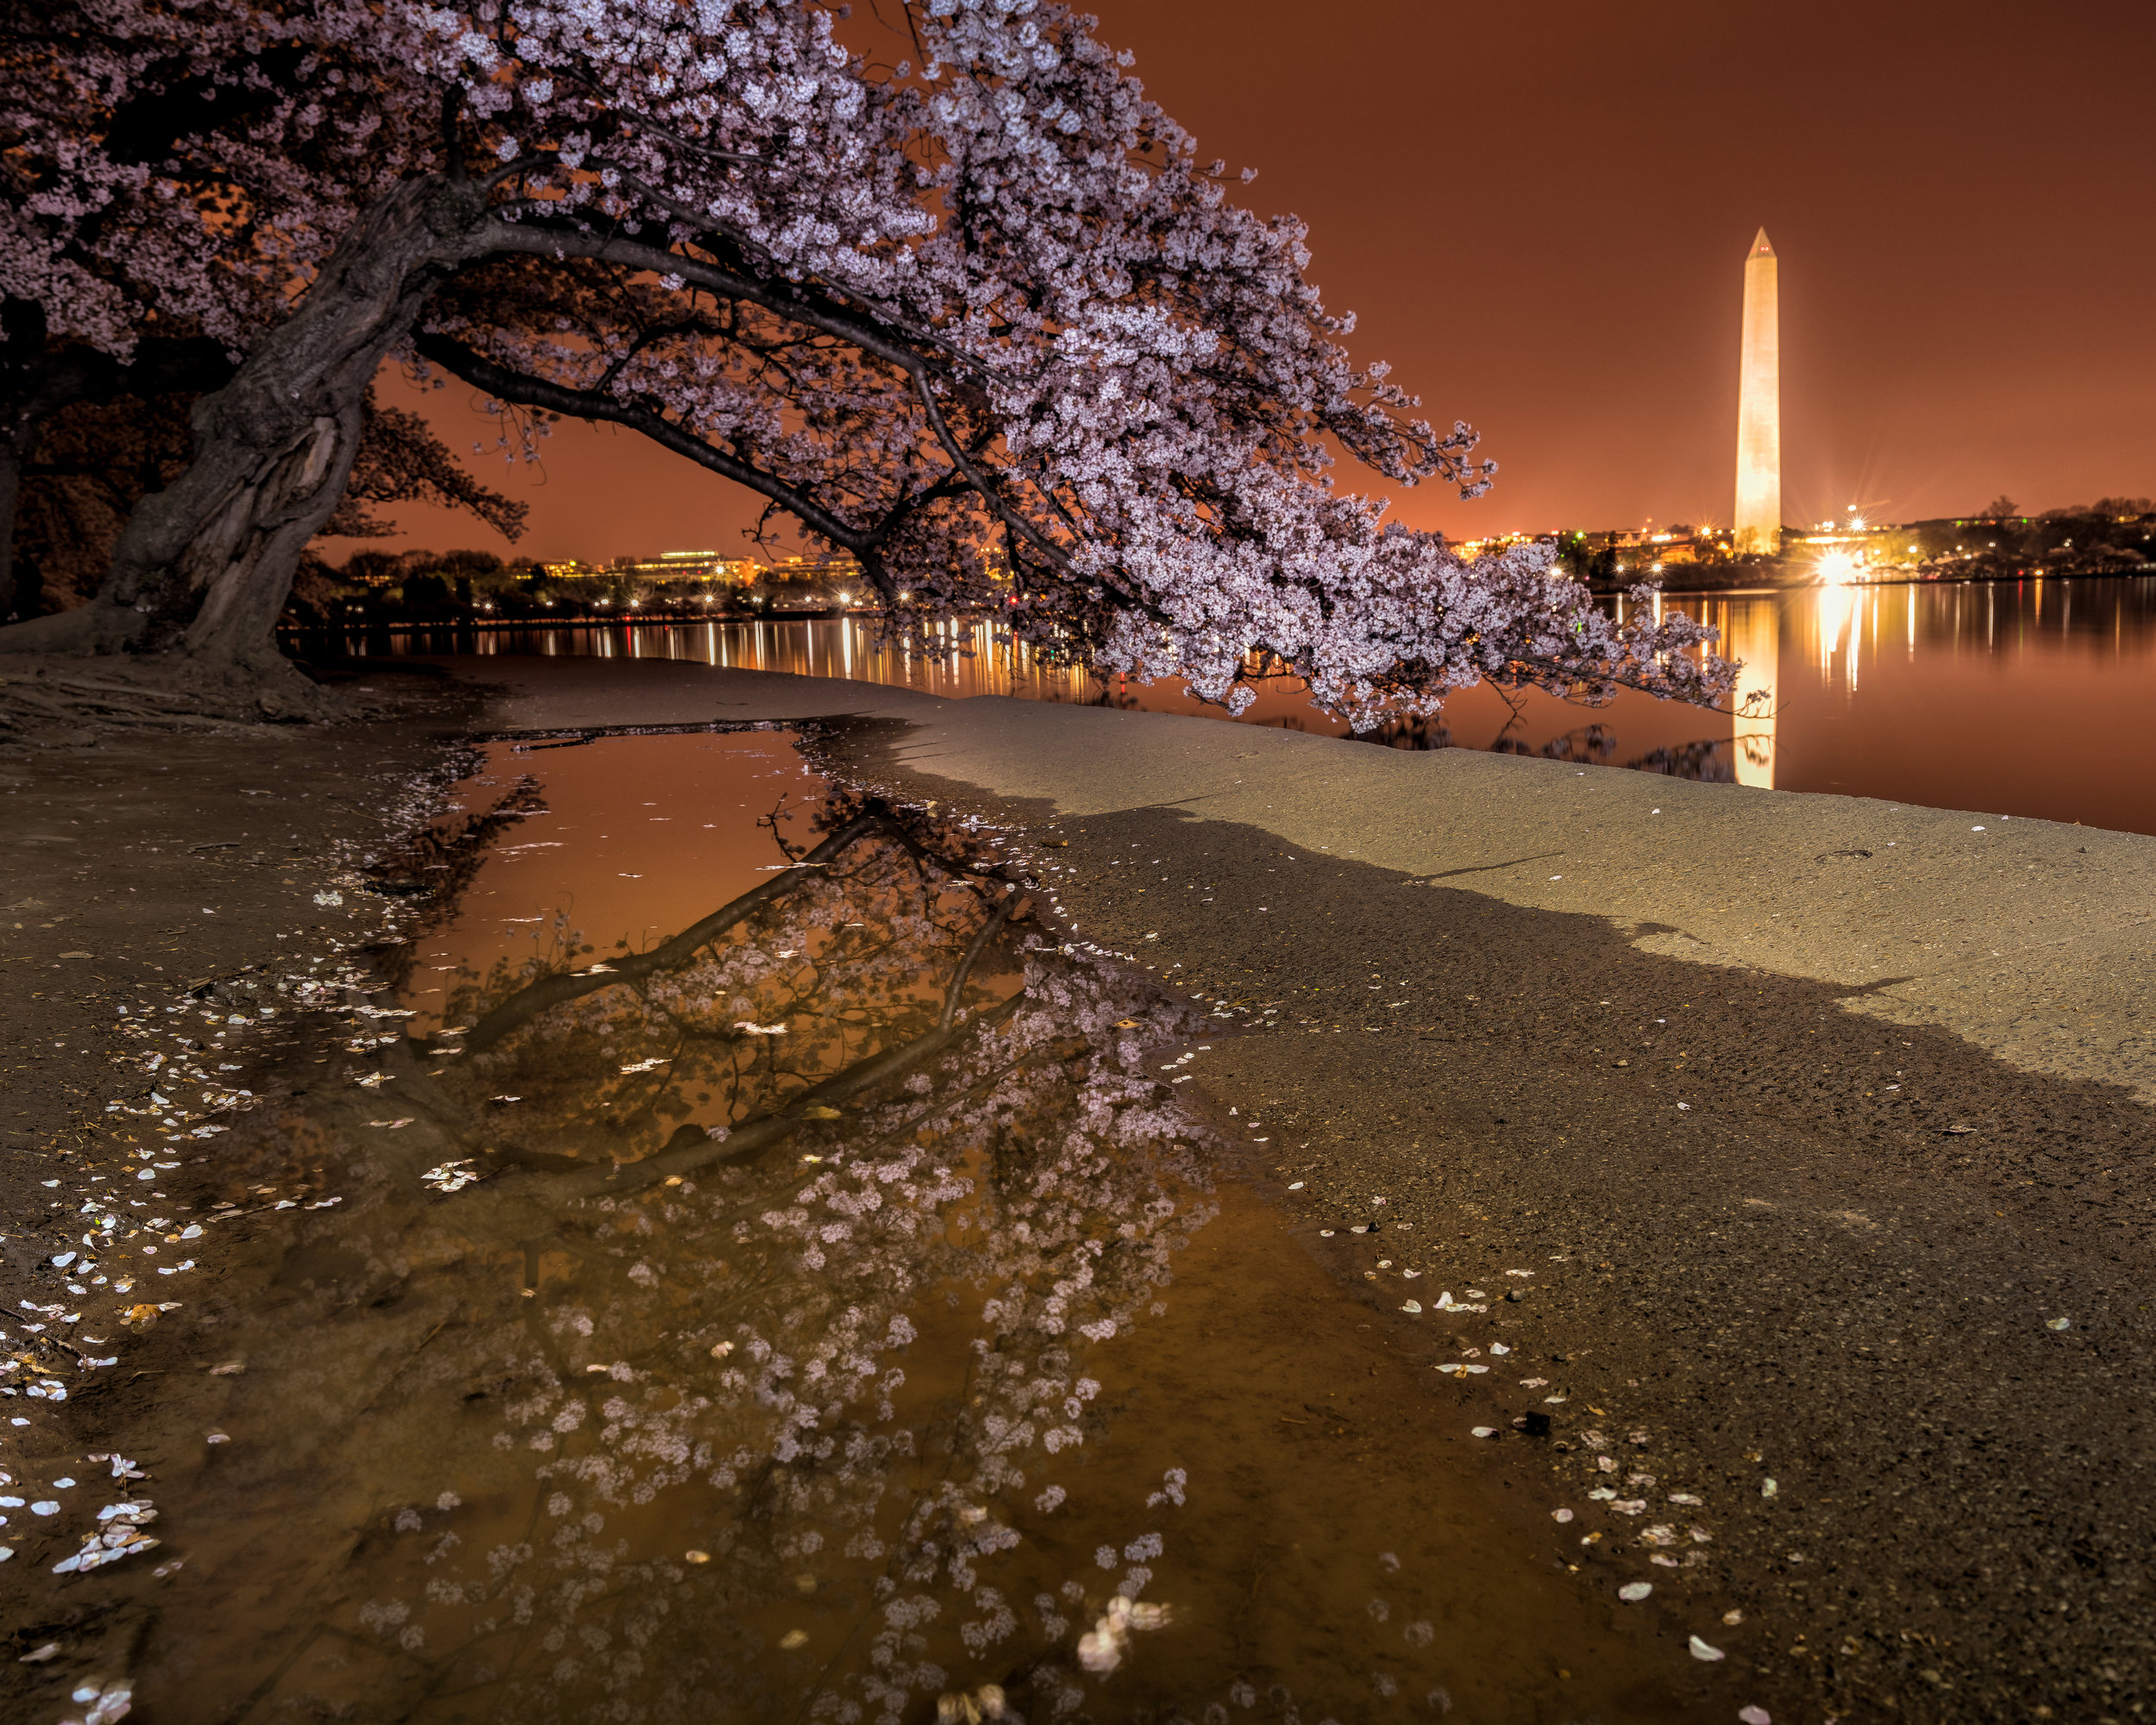 Cherry blossom season is always a popular time on the Tidal Basin ---- Sony A7R3 --- 5:38am -- Sony 16-35/24mm, 30sec Exposure, F/7.1, ISO 100, Tripod